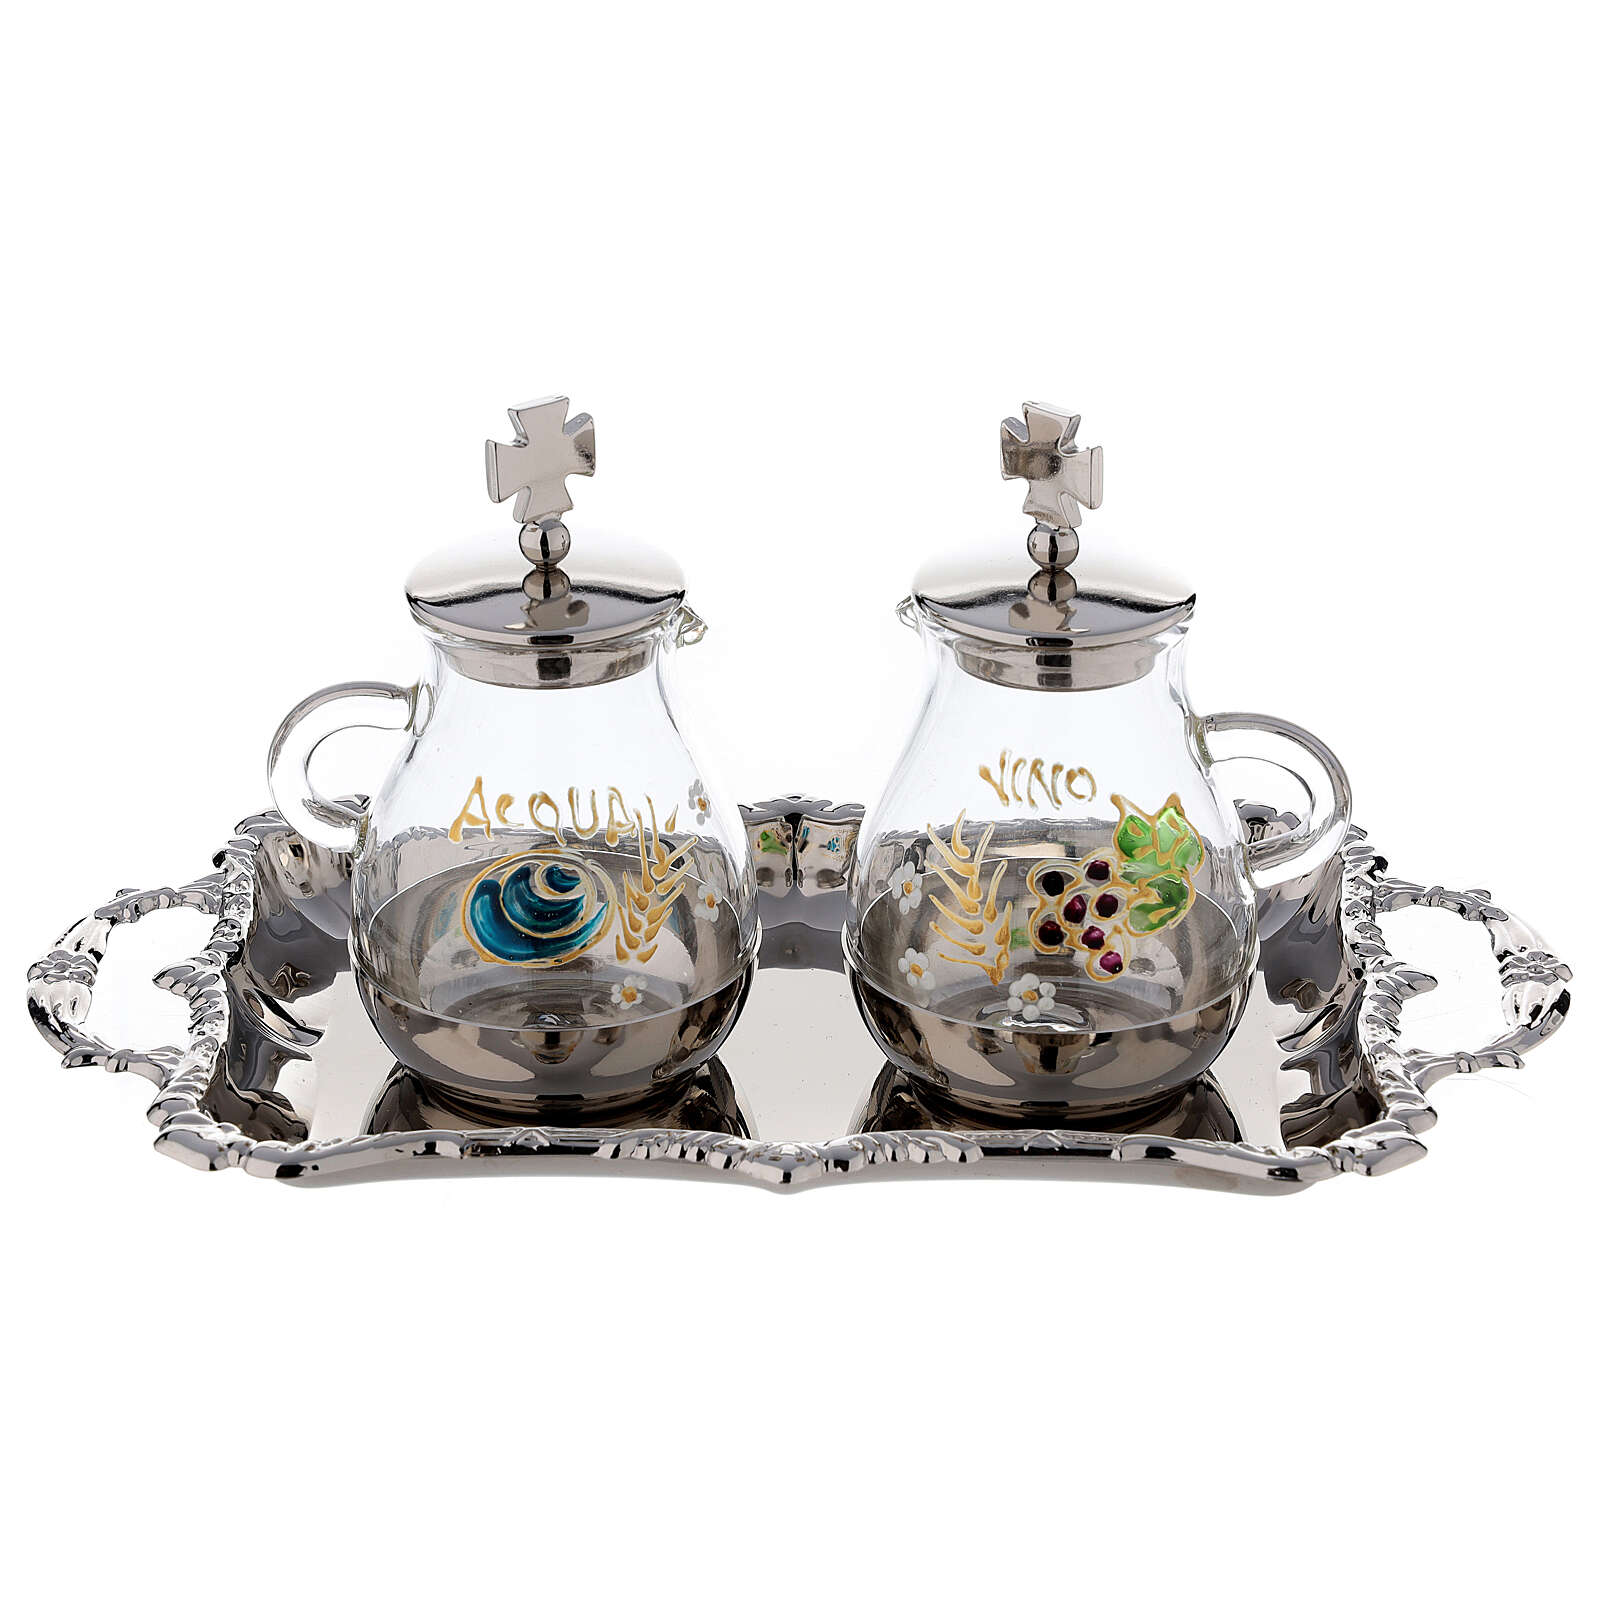 Silver plated and painted cruet set 4